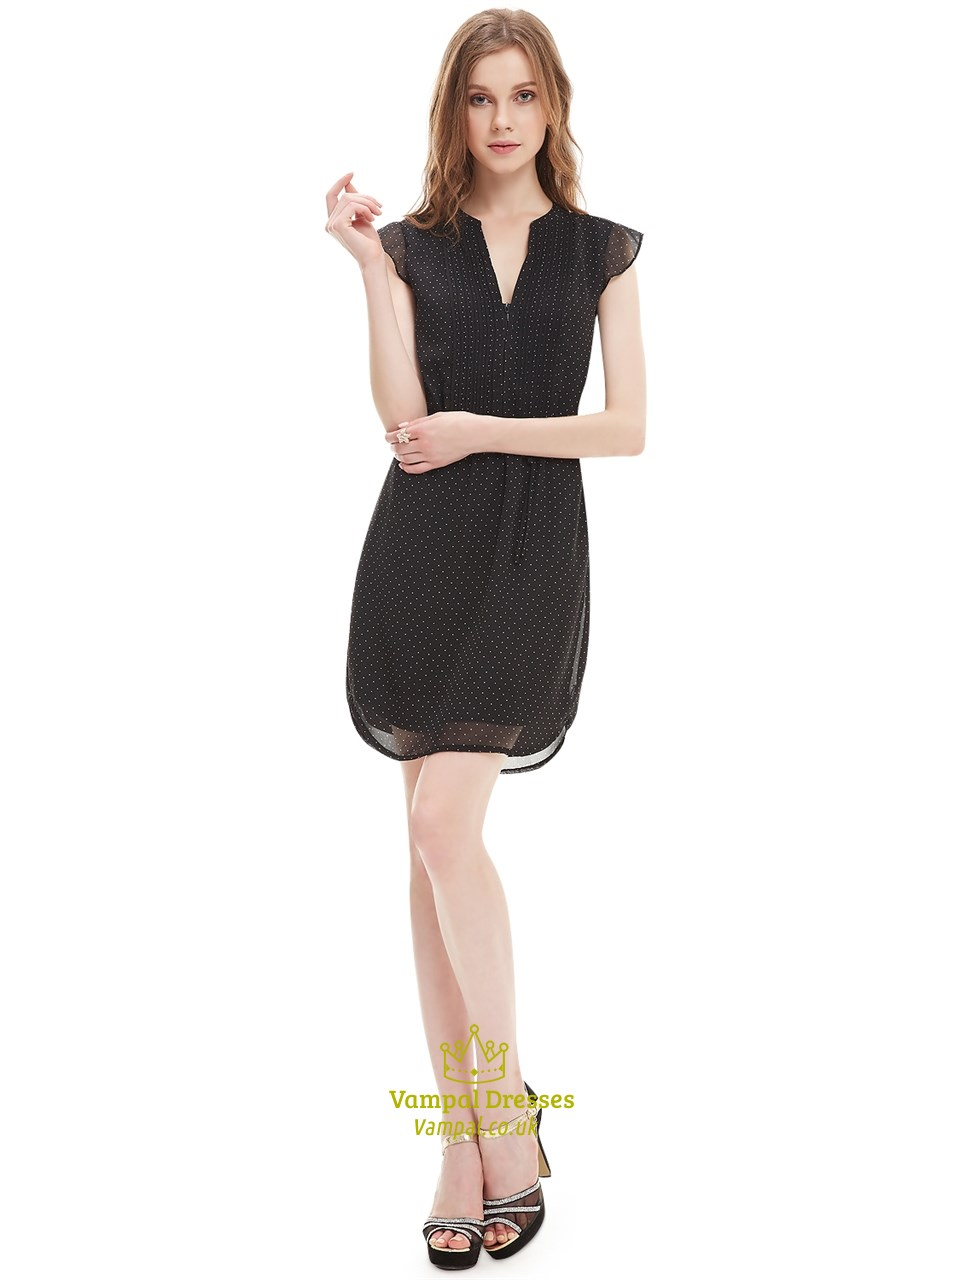 cce4598c2a25 Black Chiffon Summer Women S Semi Formal Dresses With Cap Sleeve SKU -NW1177